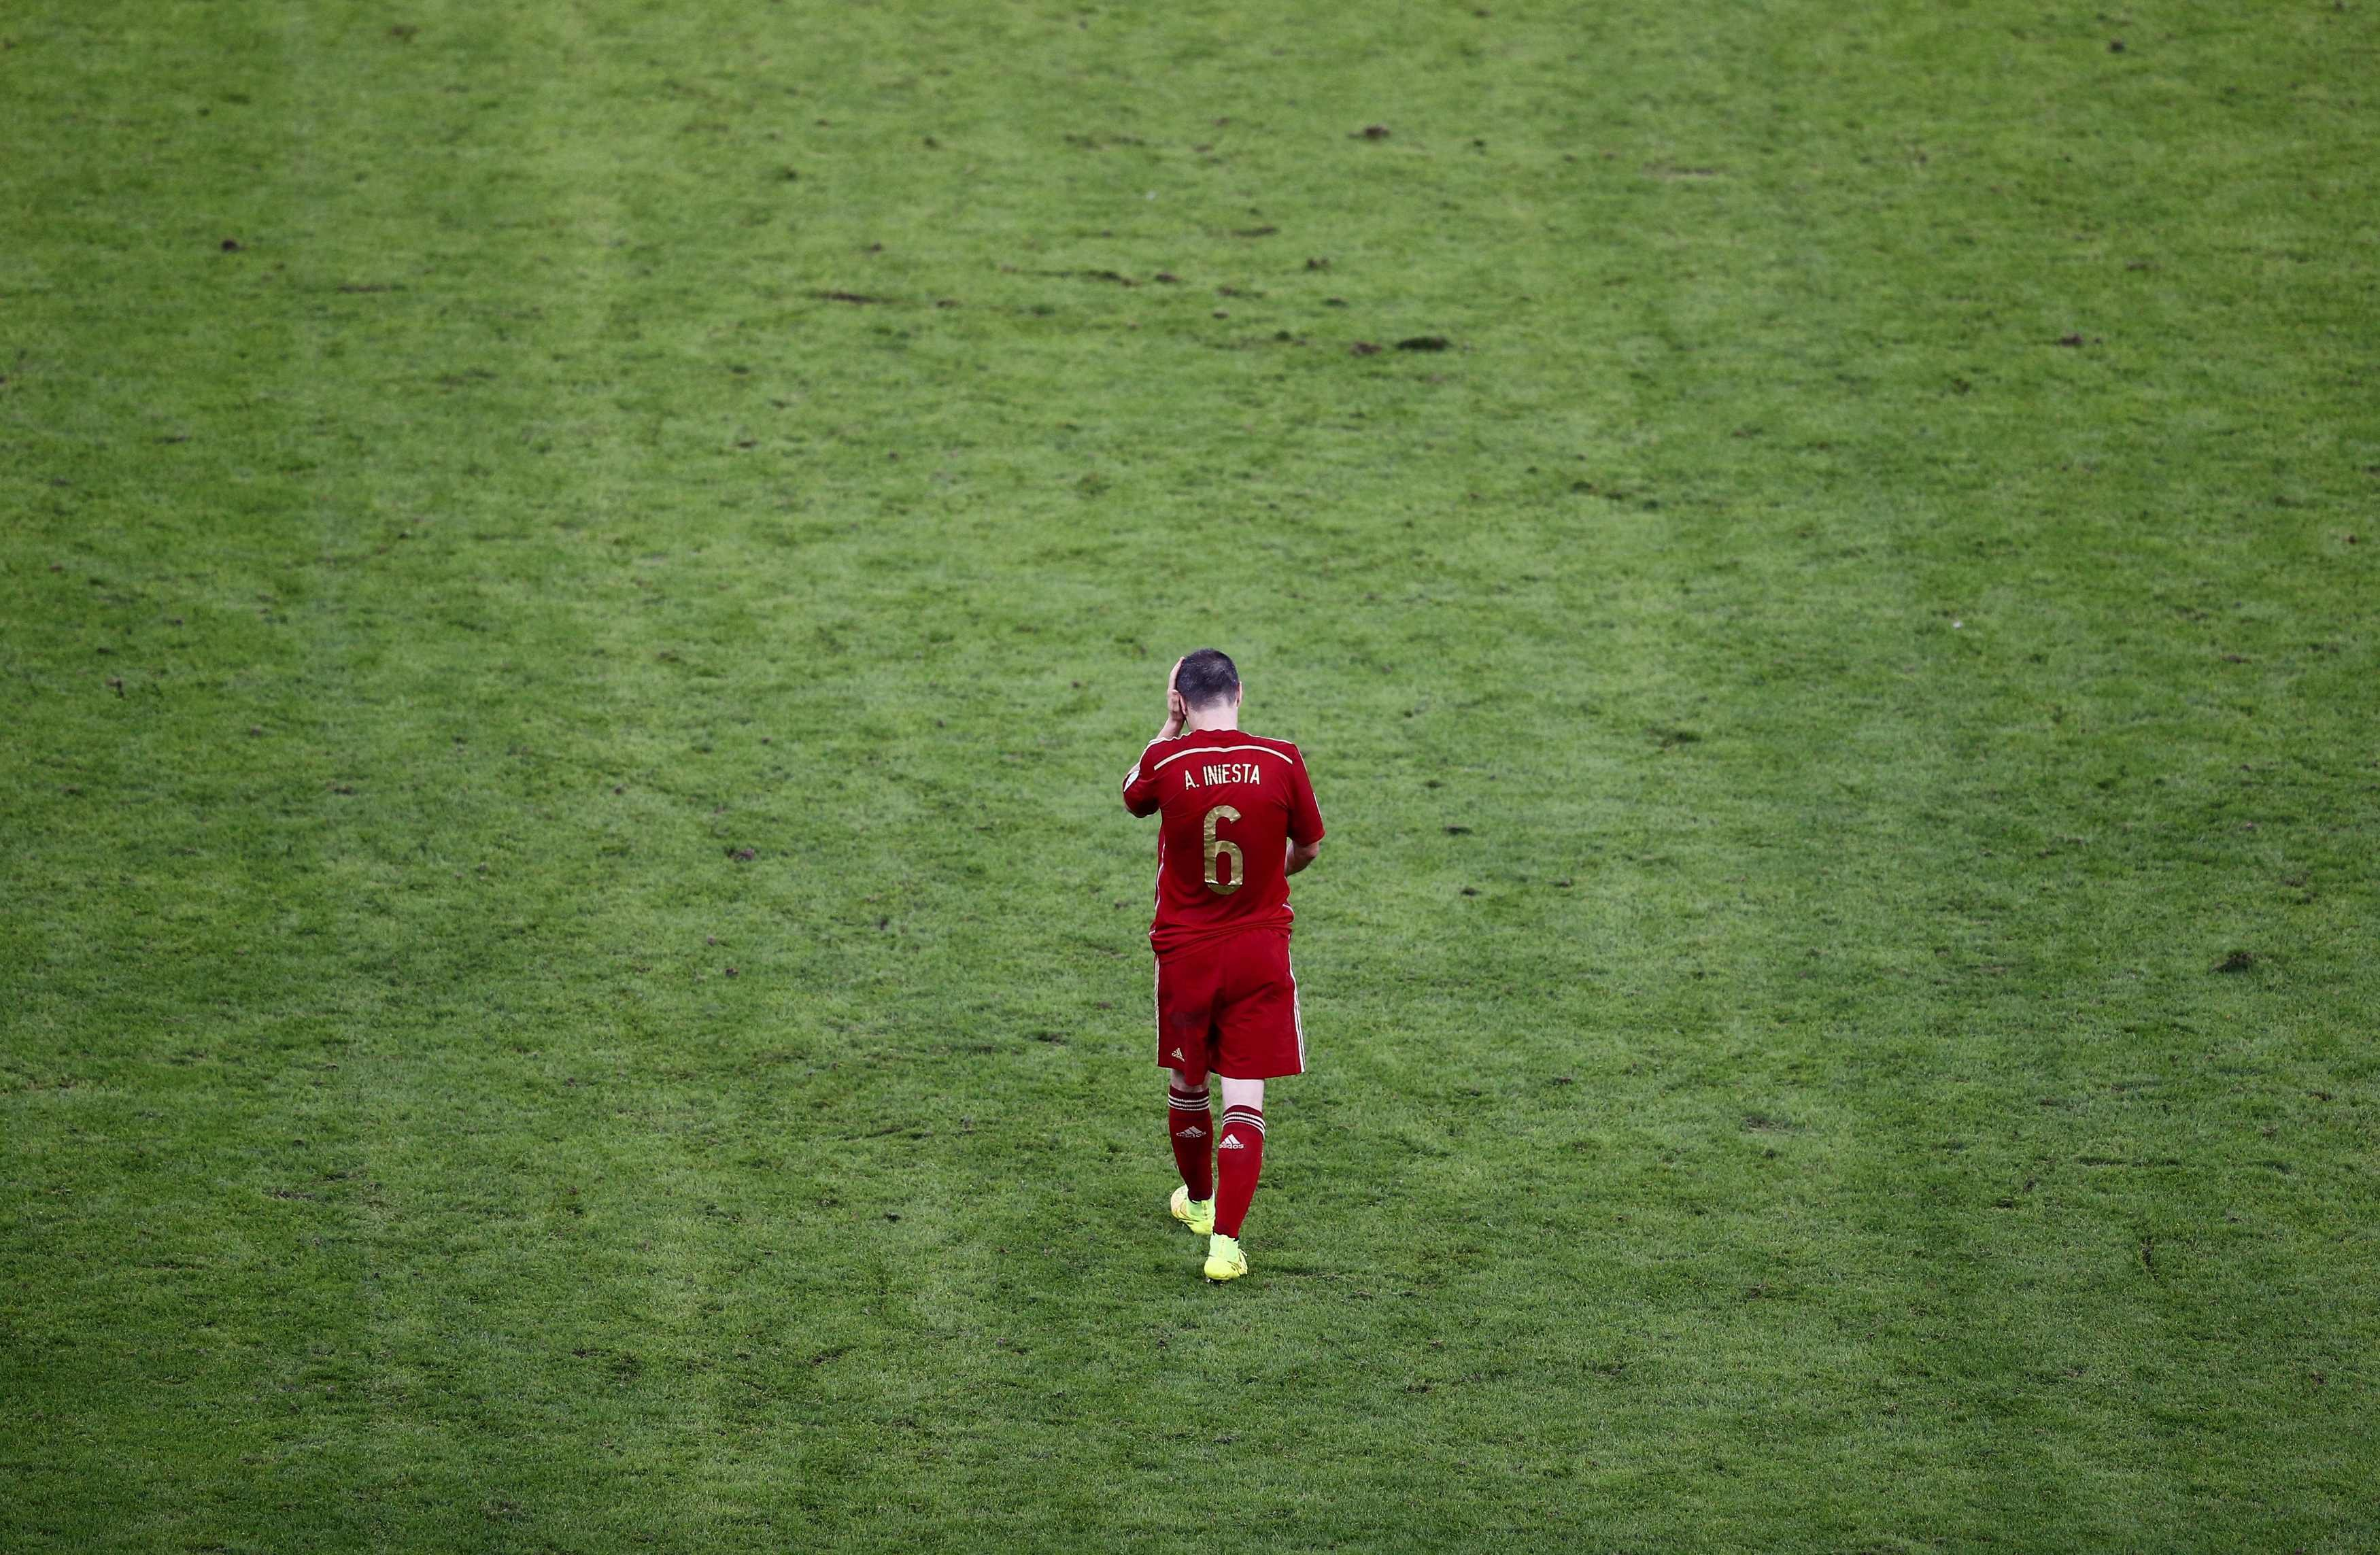 Spain's Andres Iniesta walks on the pitch during the 2014 World Cup Group B soccer match between Spain and Chile at the Maracana stadium in Rio de Janeiro on June 18, 2014.